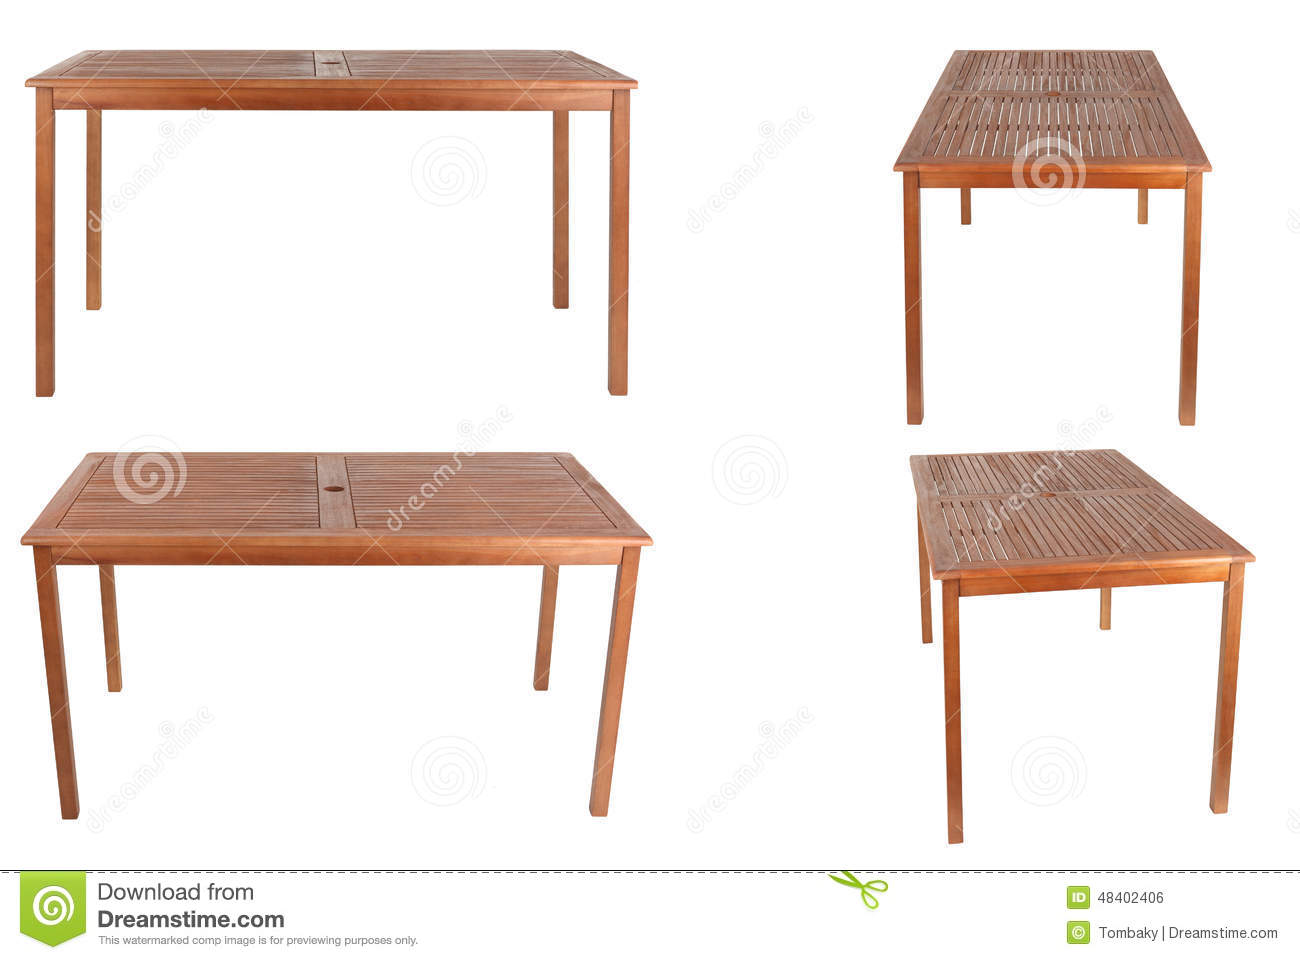 Table en bois d isolement sur le fond blanc